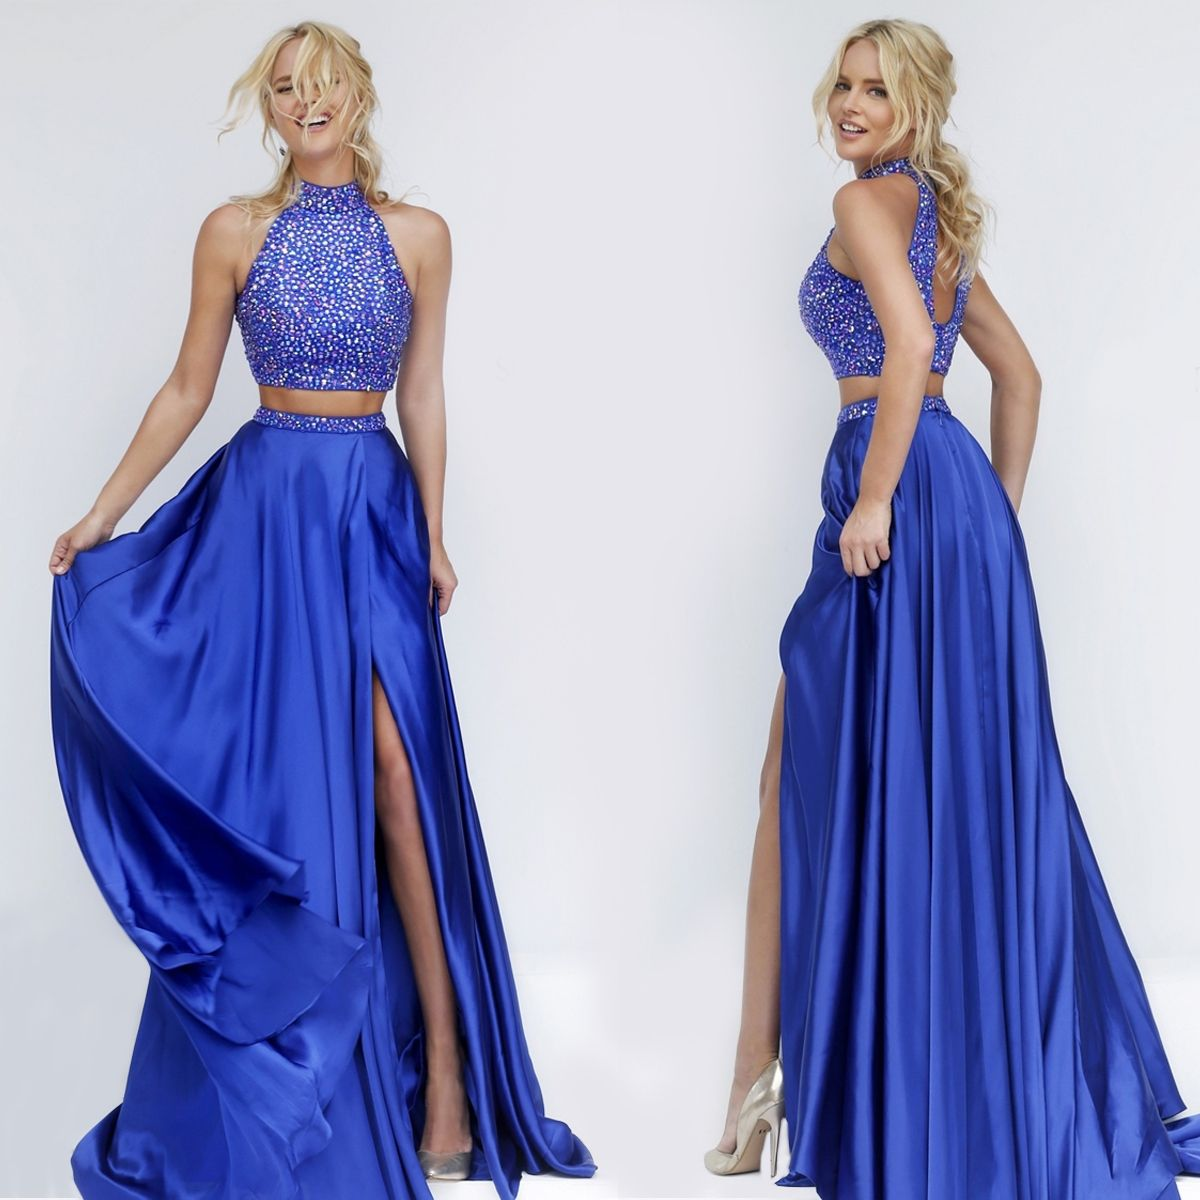 Long High Neck Two Piece Sherri Hill Dress with Side Slit c0bc90a48b01